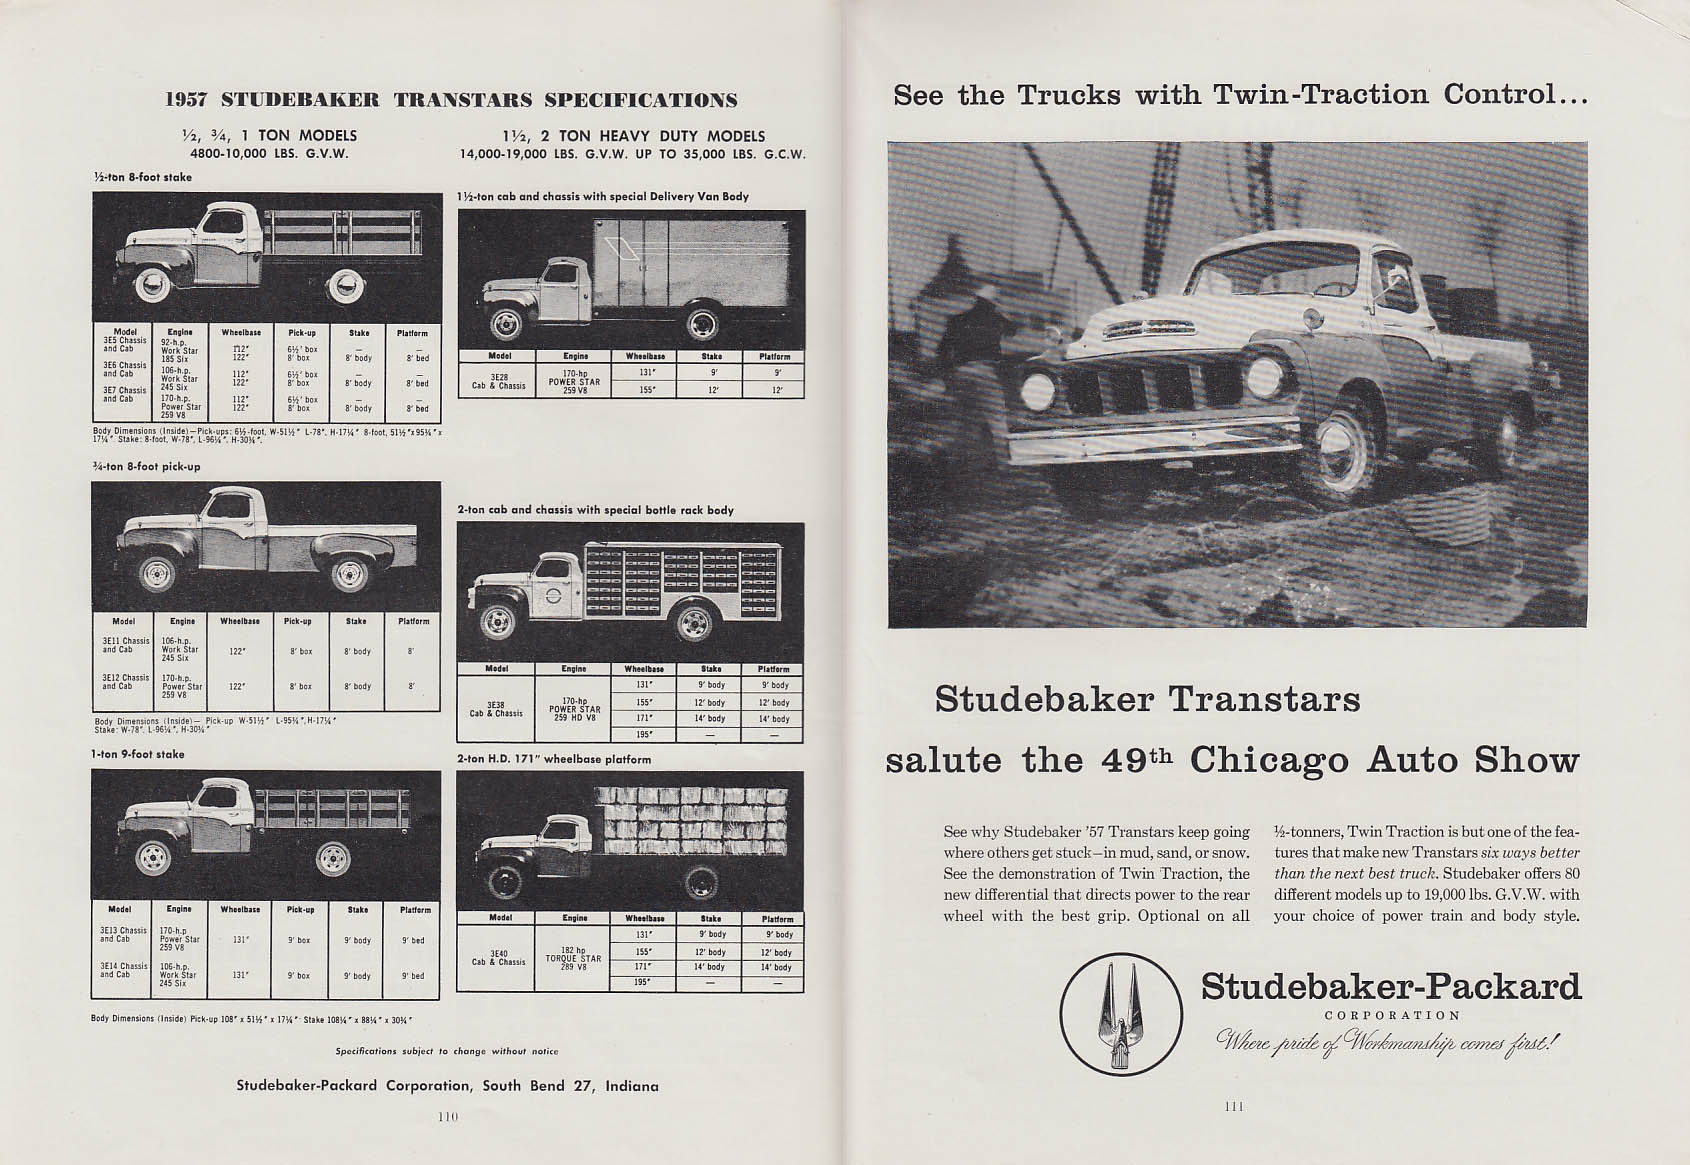 Studebaker Transtar Trucks salute the Chicago Auto Show Program 1957 ad